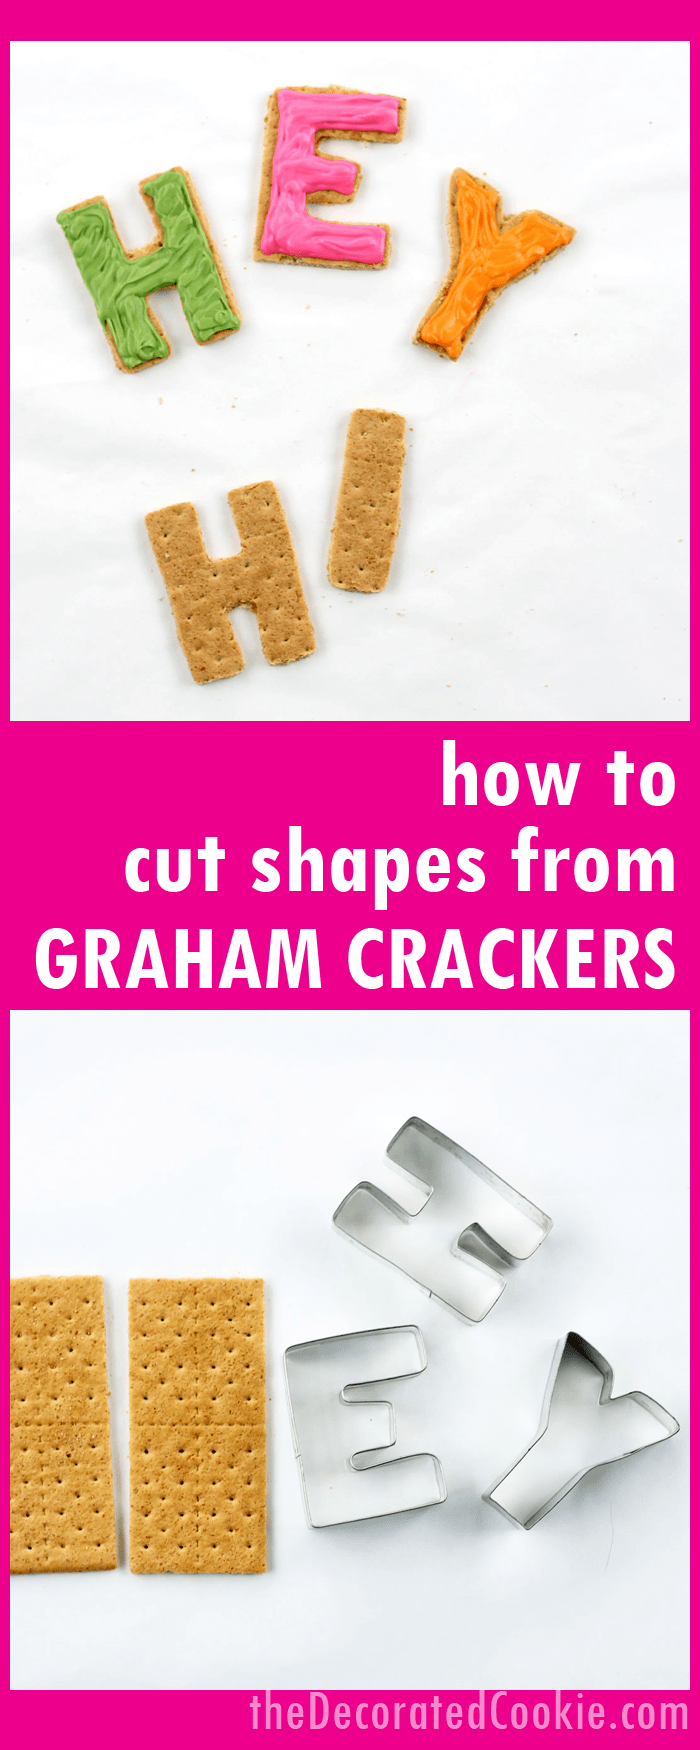 how to cut shapes from graham crackers with cookie cutters for easy, kid-friendly cookie decorating